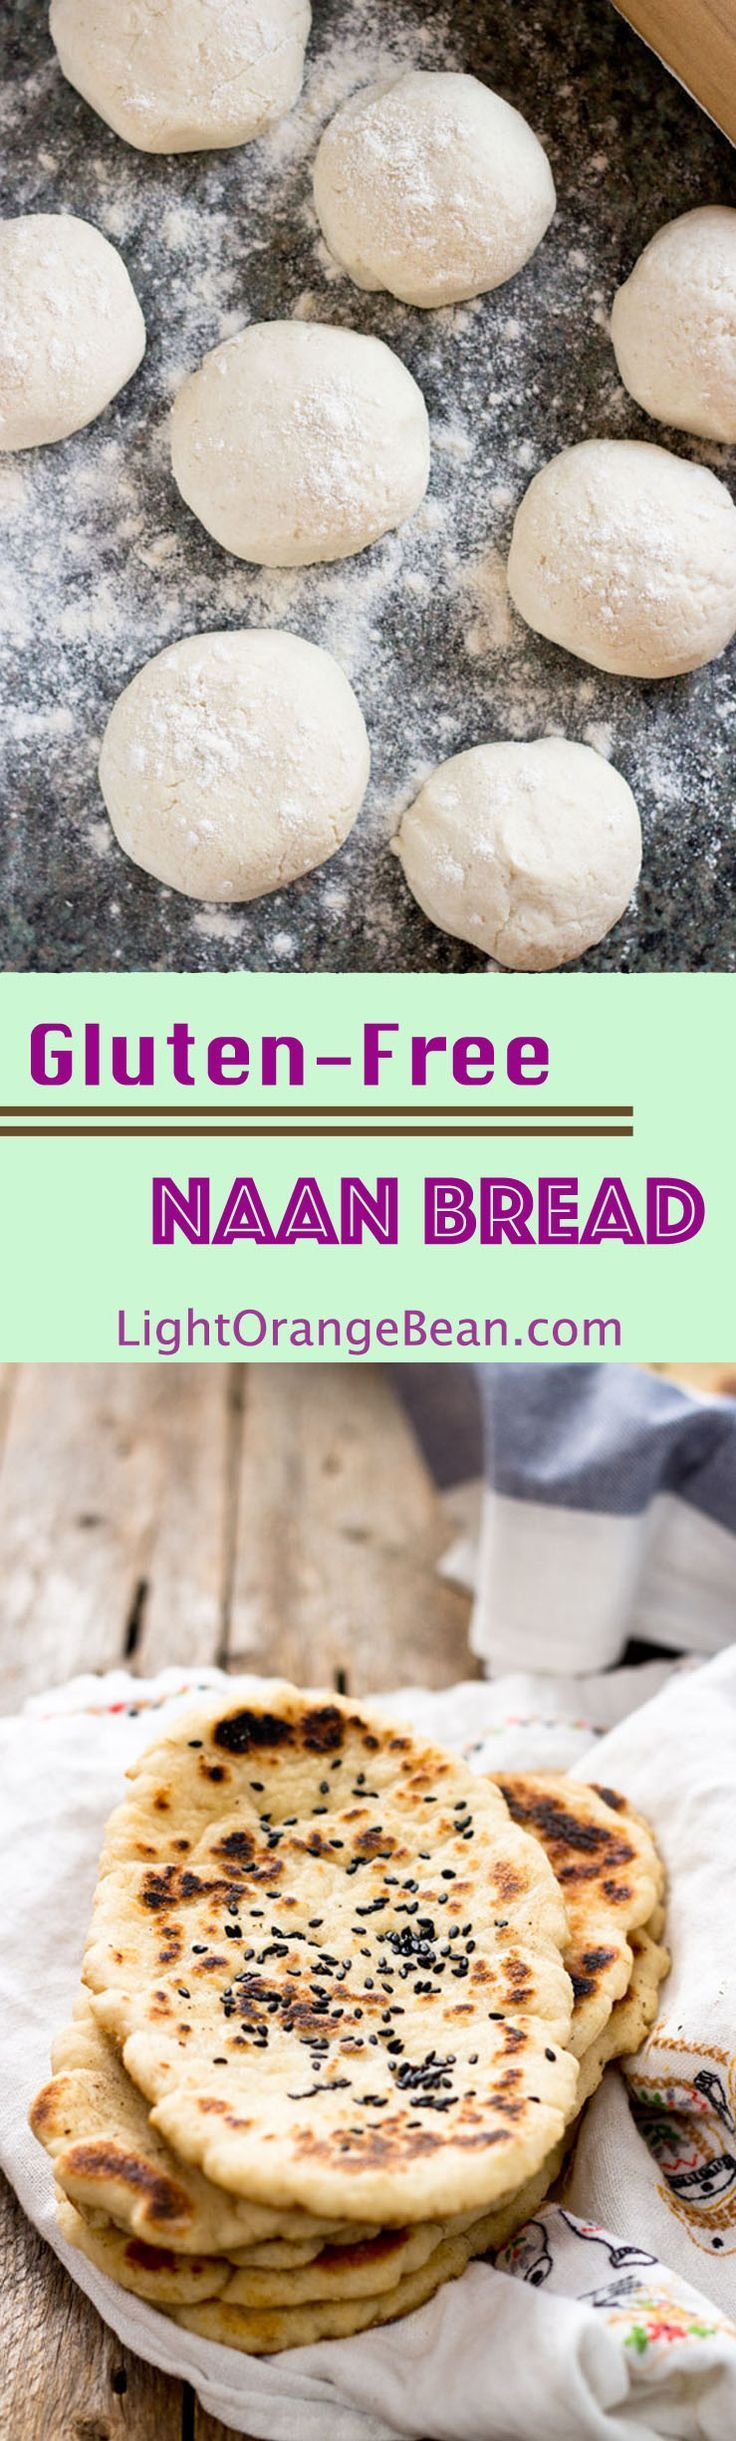 This pillowy gluten-free soft naan is the best gf flatbread Ive ever had.  You can use it to scoop other foods, such as sauce or dips, like you would do in an authentic Indian restaurant.